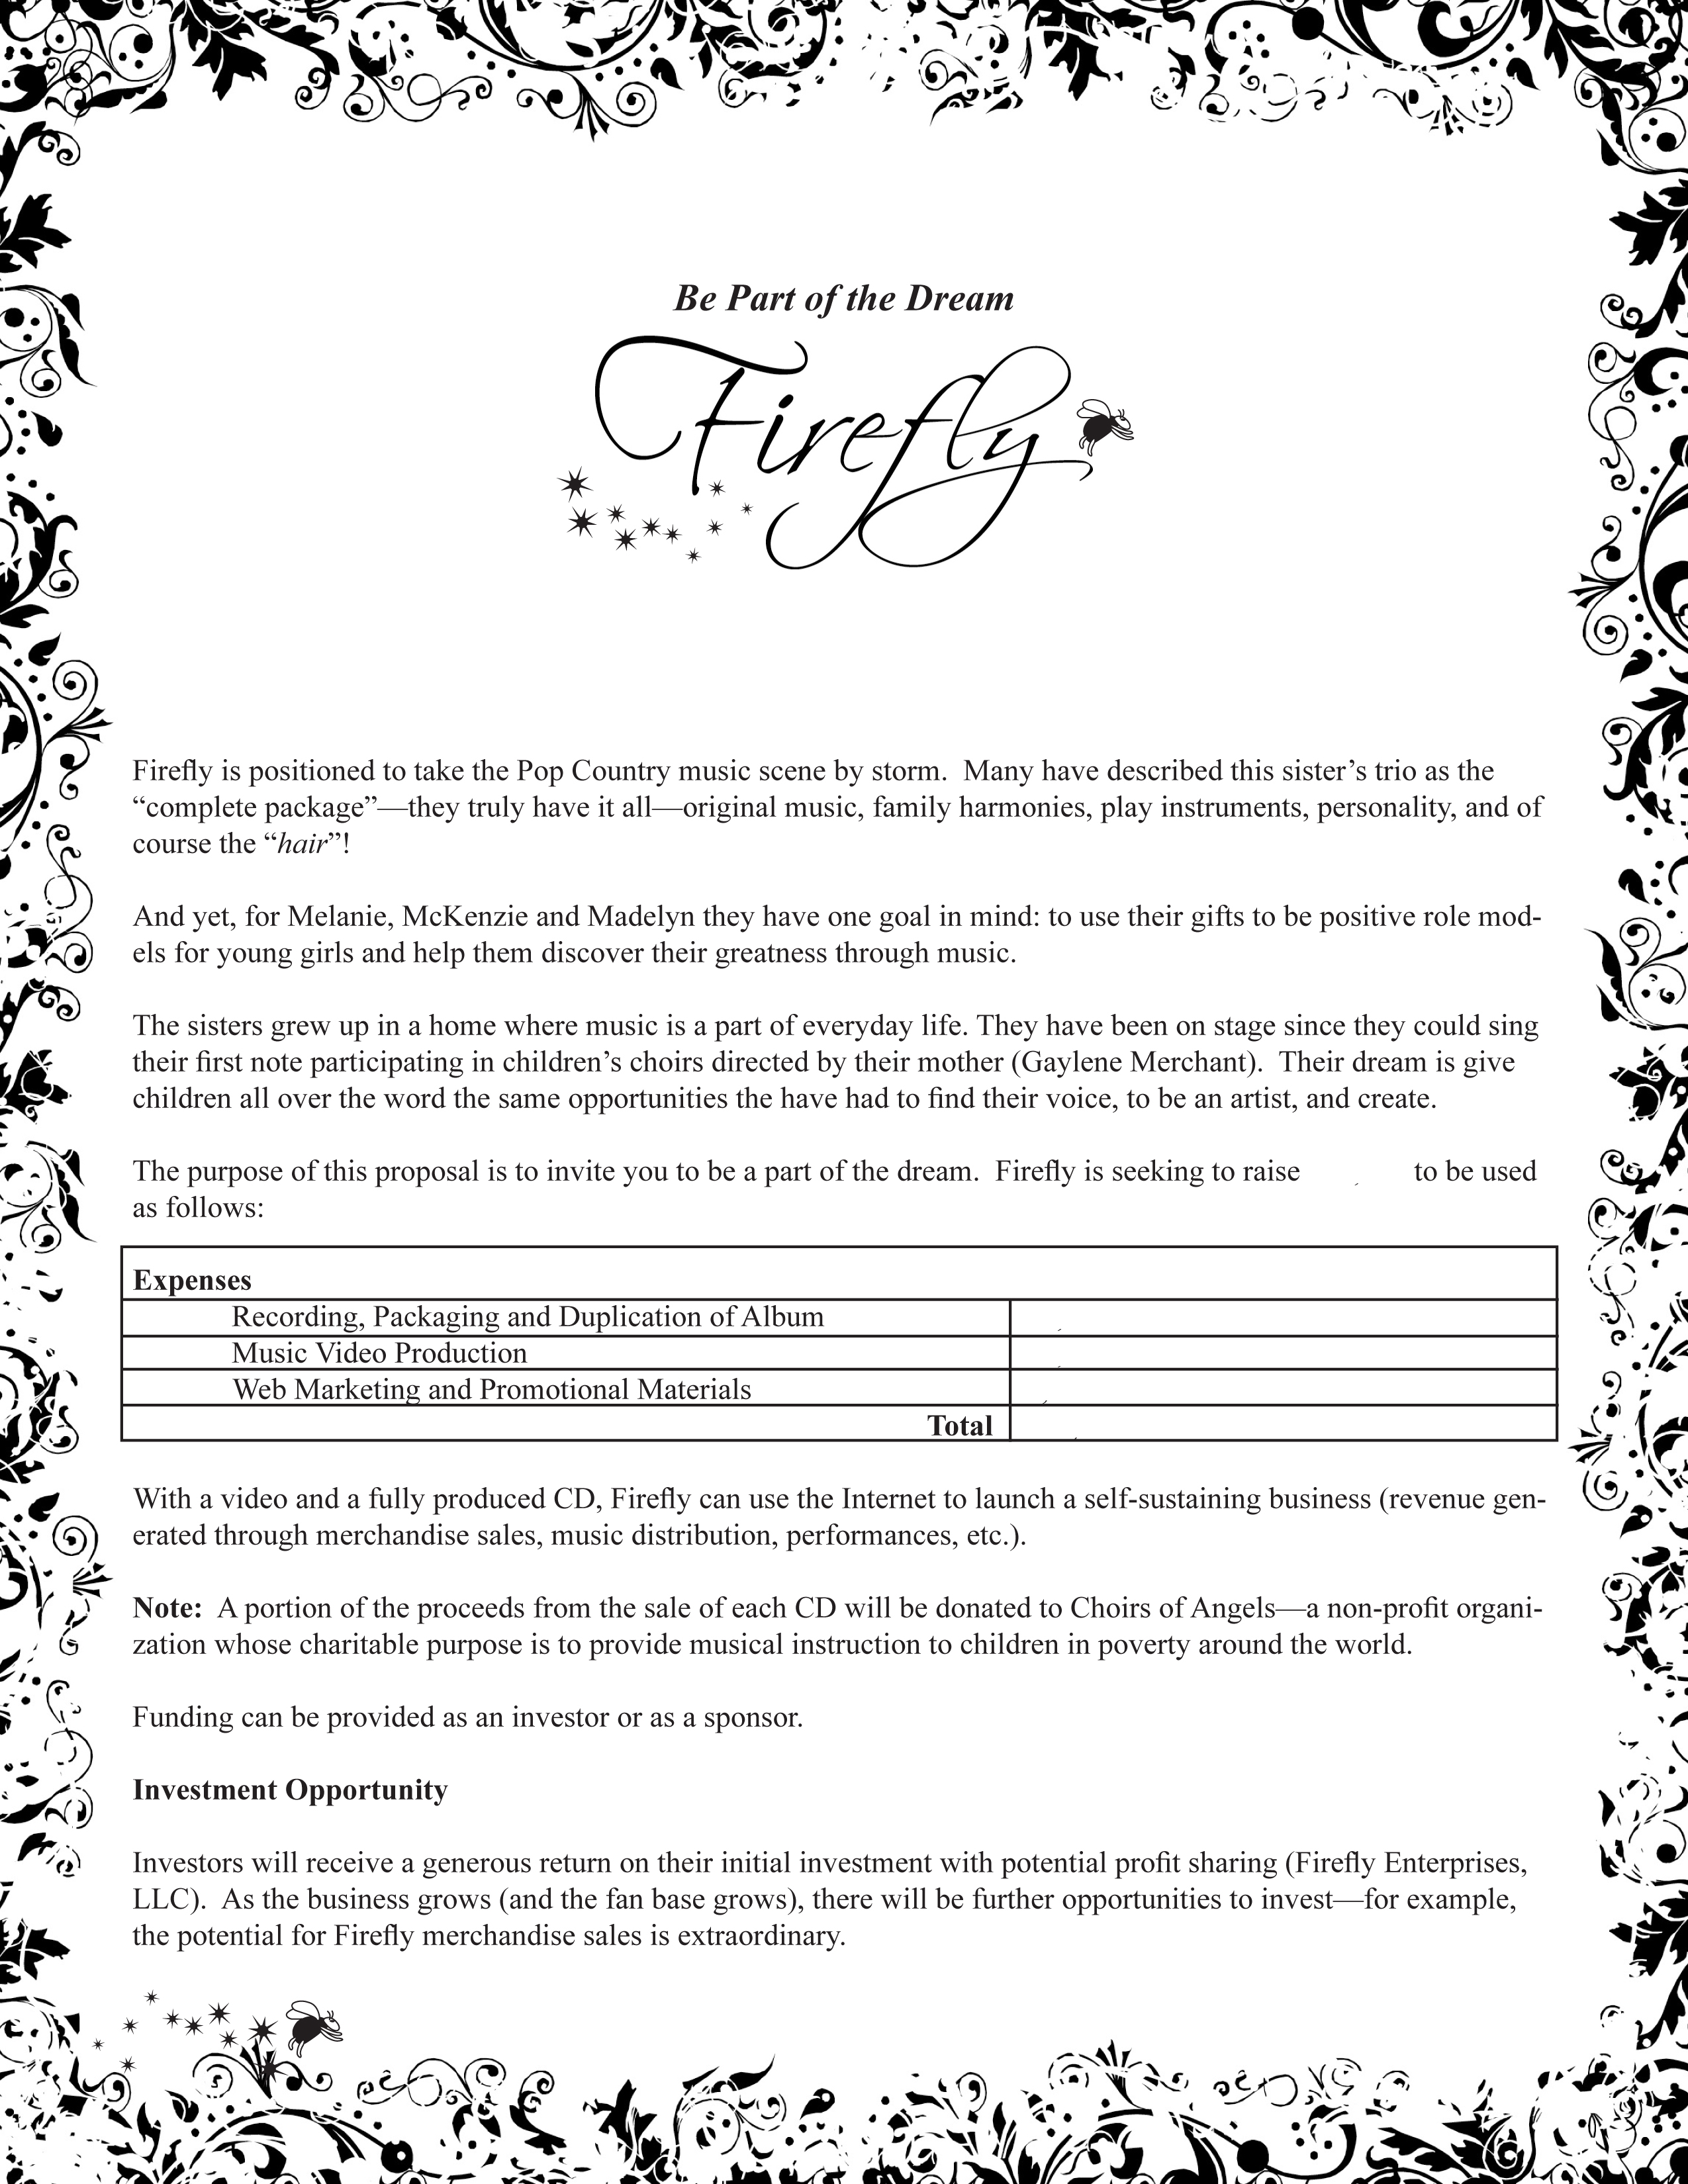 Firefly Fundraising Proposal Page 1 of 2